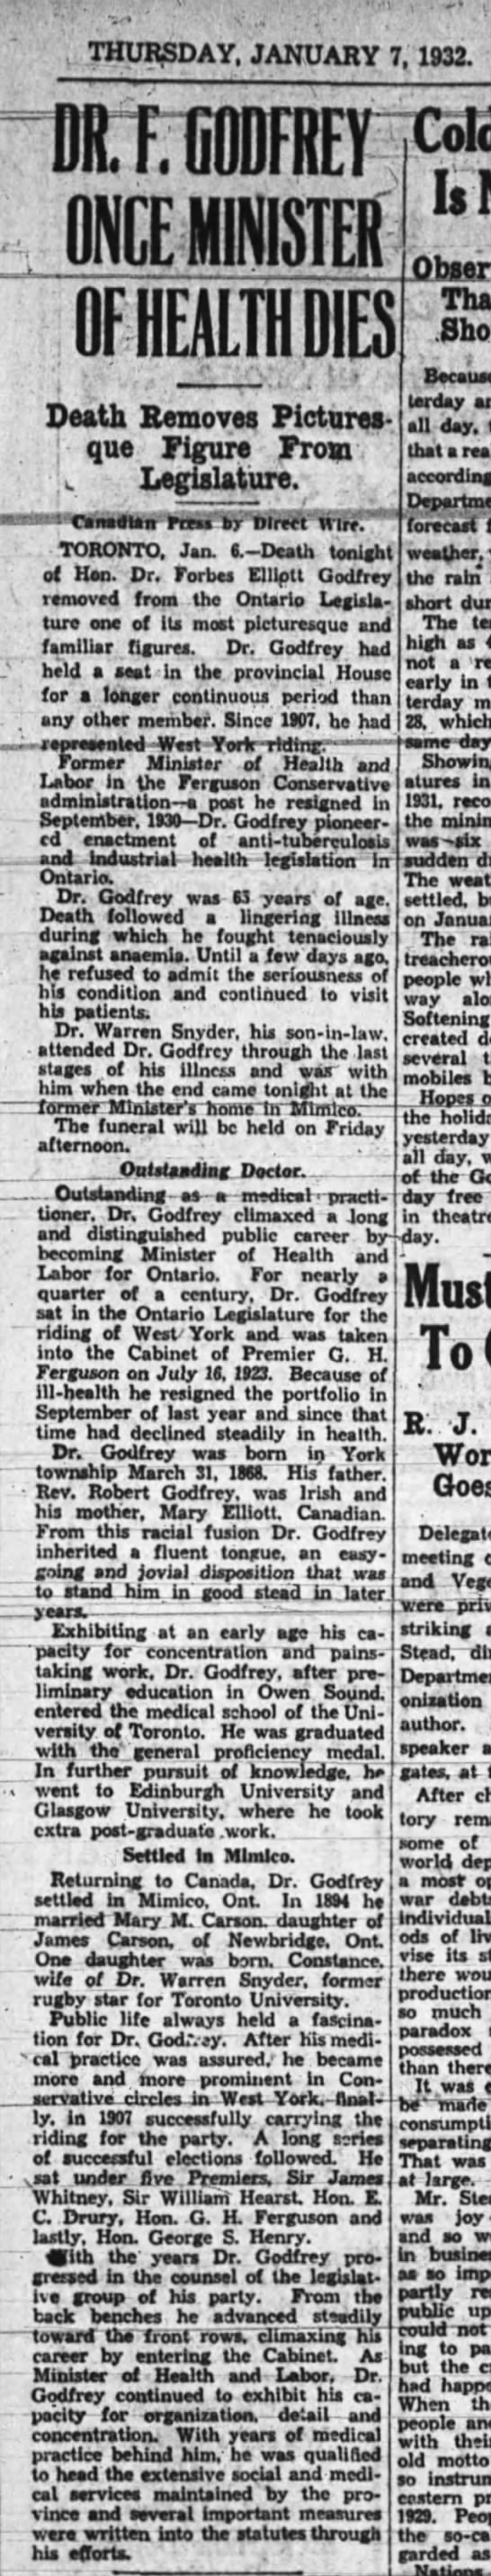 Forbes Godfrey dies - THURSDAY. JANUARY 7, 1932. Is OF HEALTH DIES...